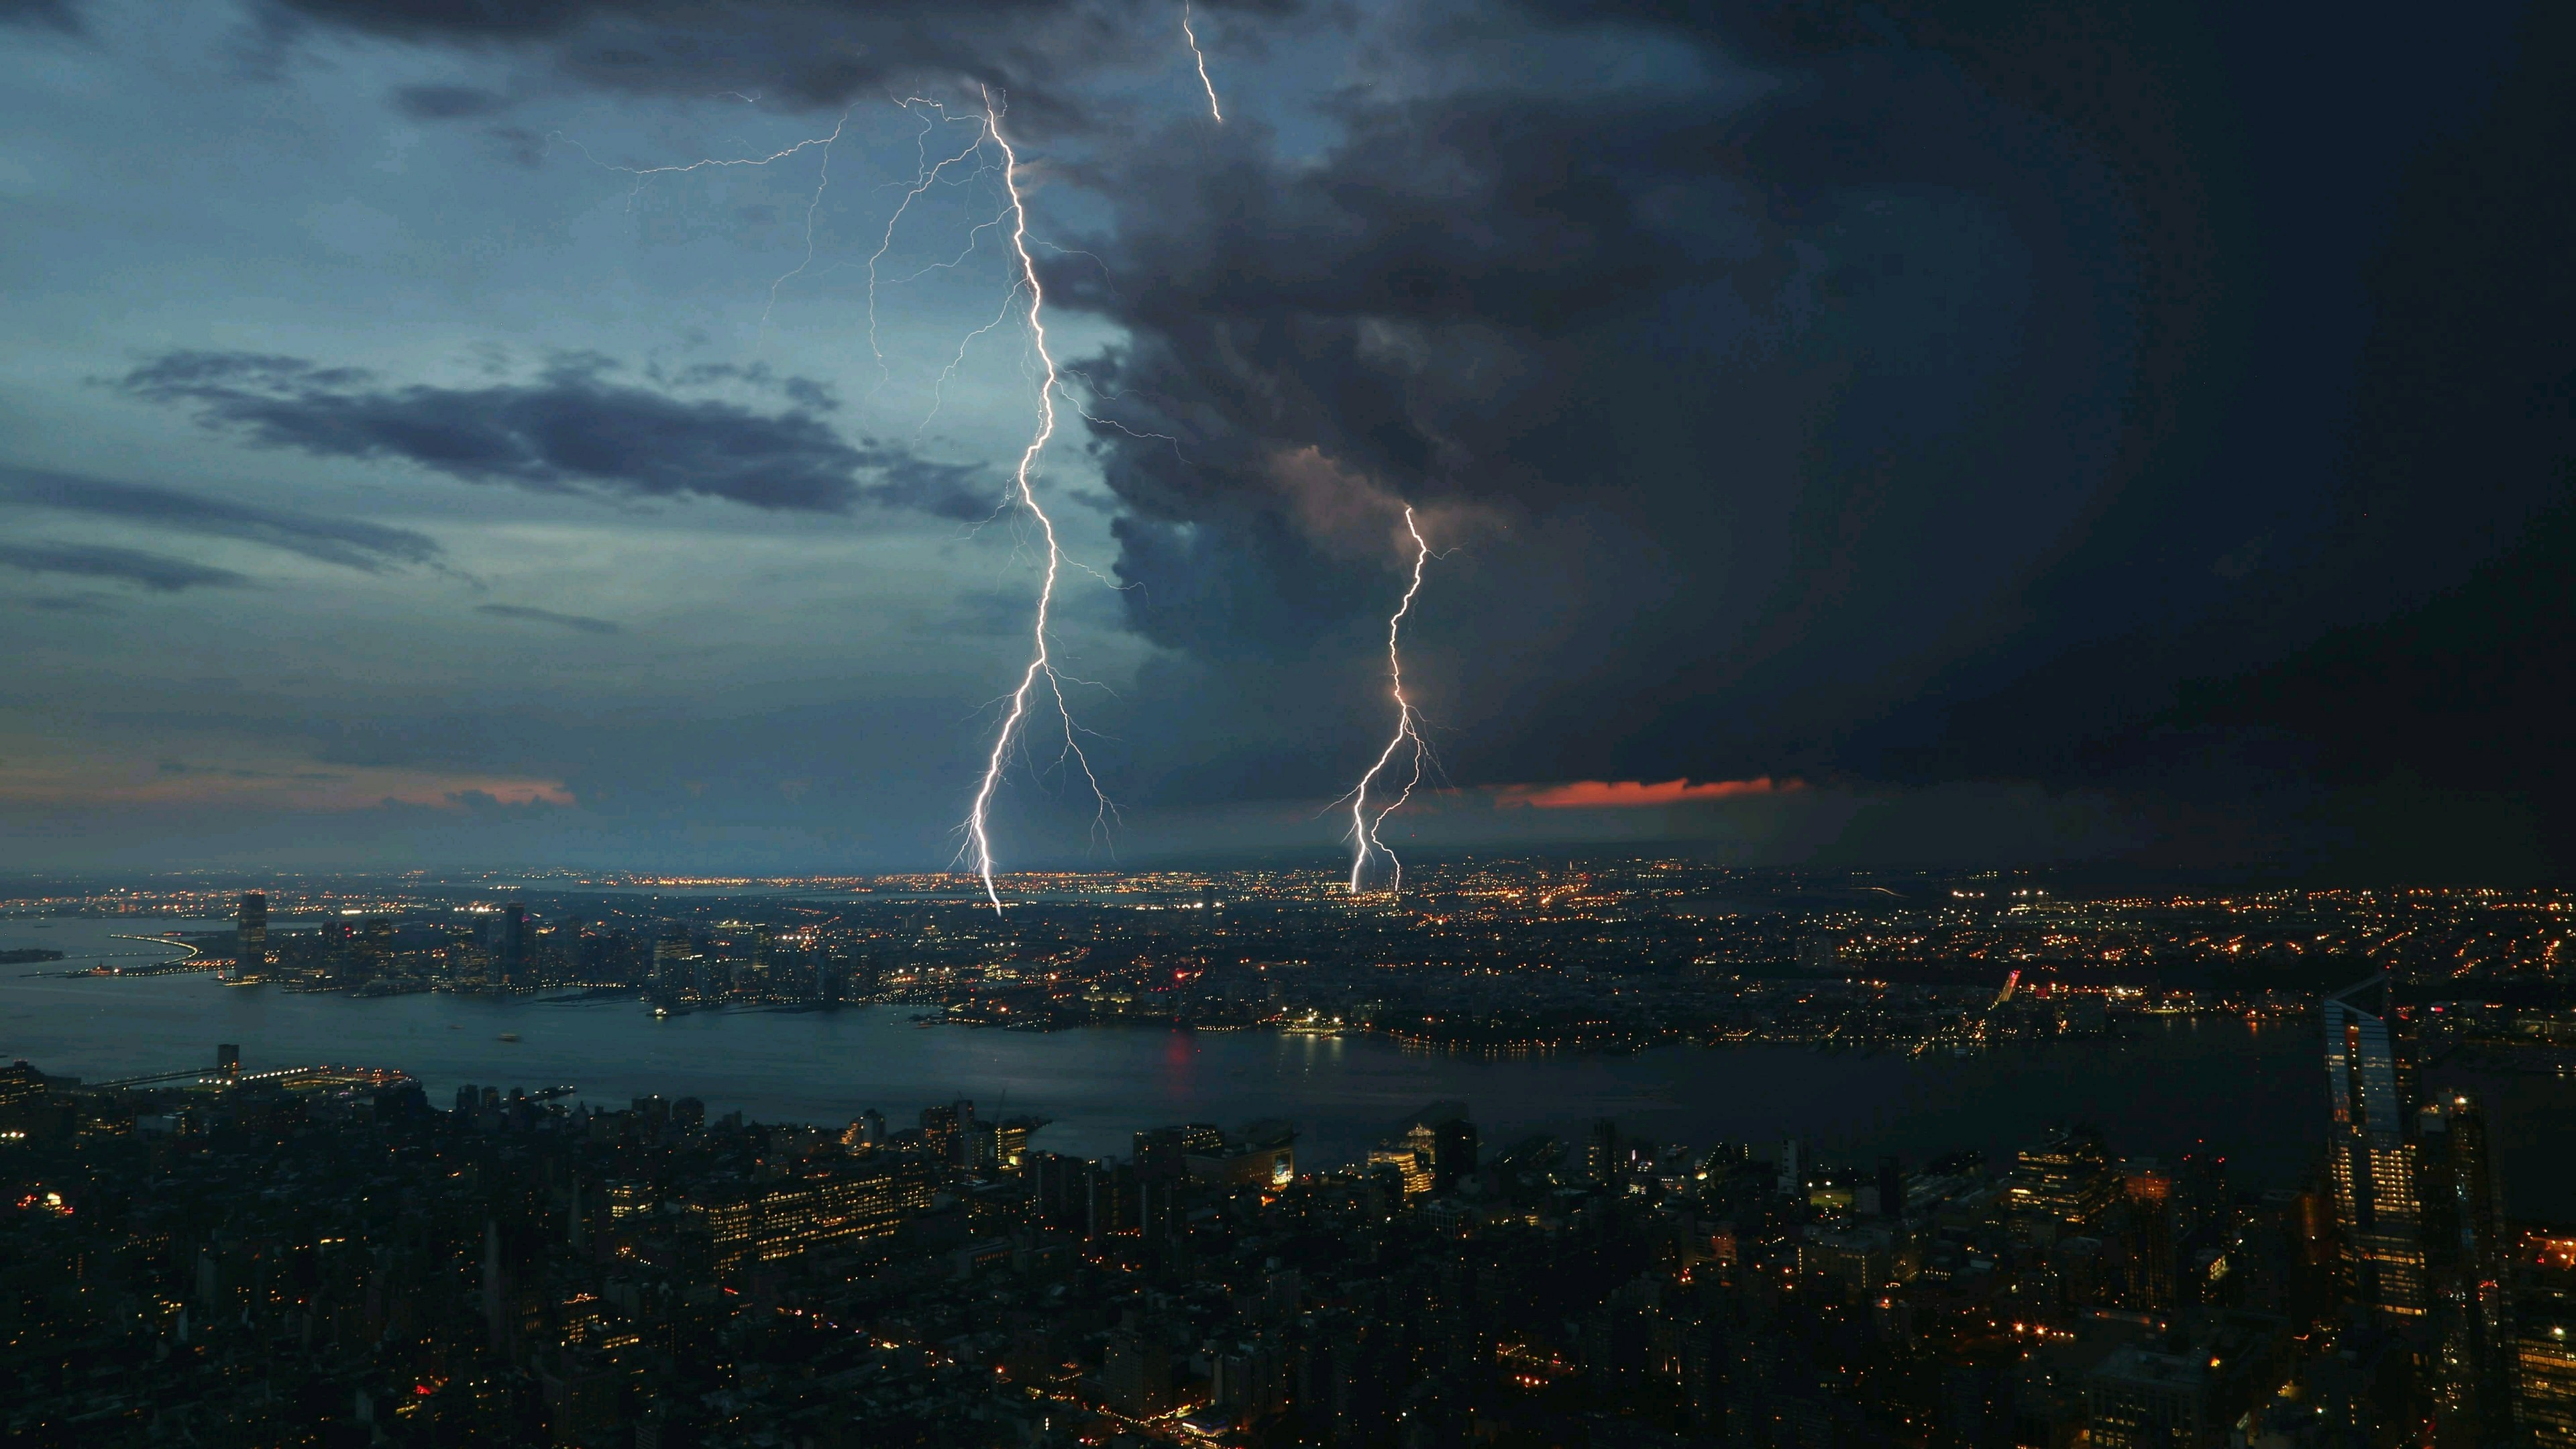 Res: 3840x2160, Thunderstorm Over The City Wallpaper | Wallpaper Studio 10 | Tens of  thousands HD and UltraHD wallpapers for Android, Windows and Xbox